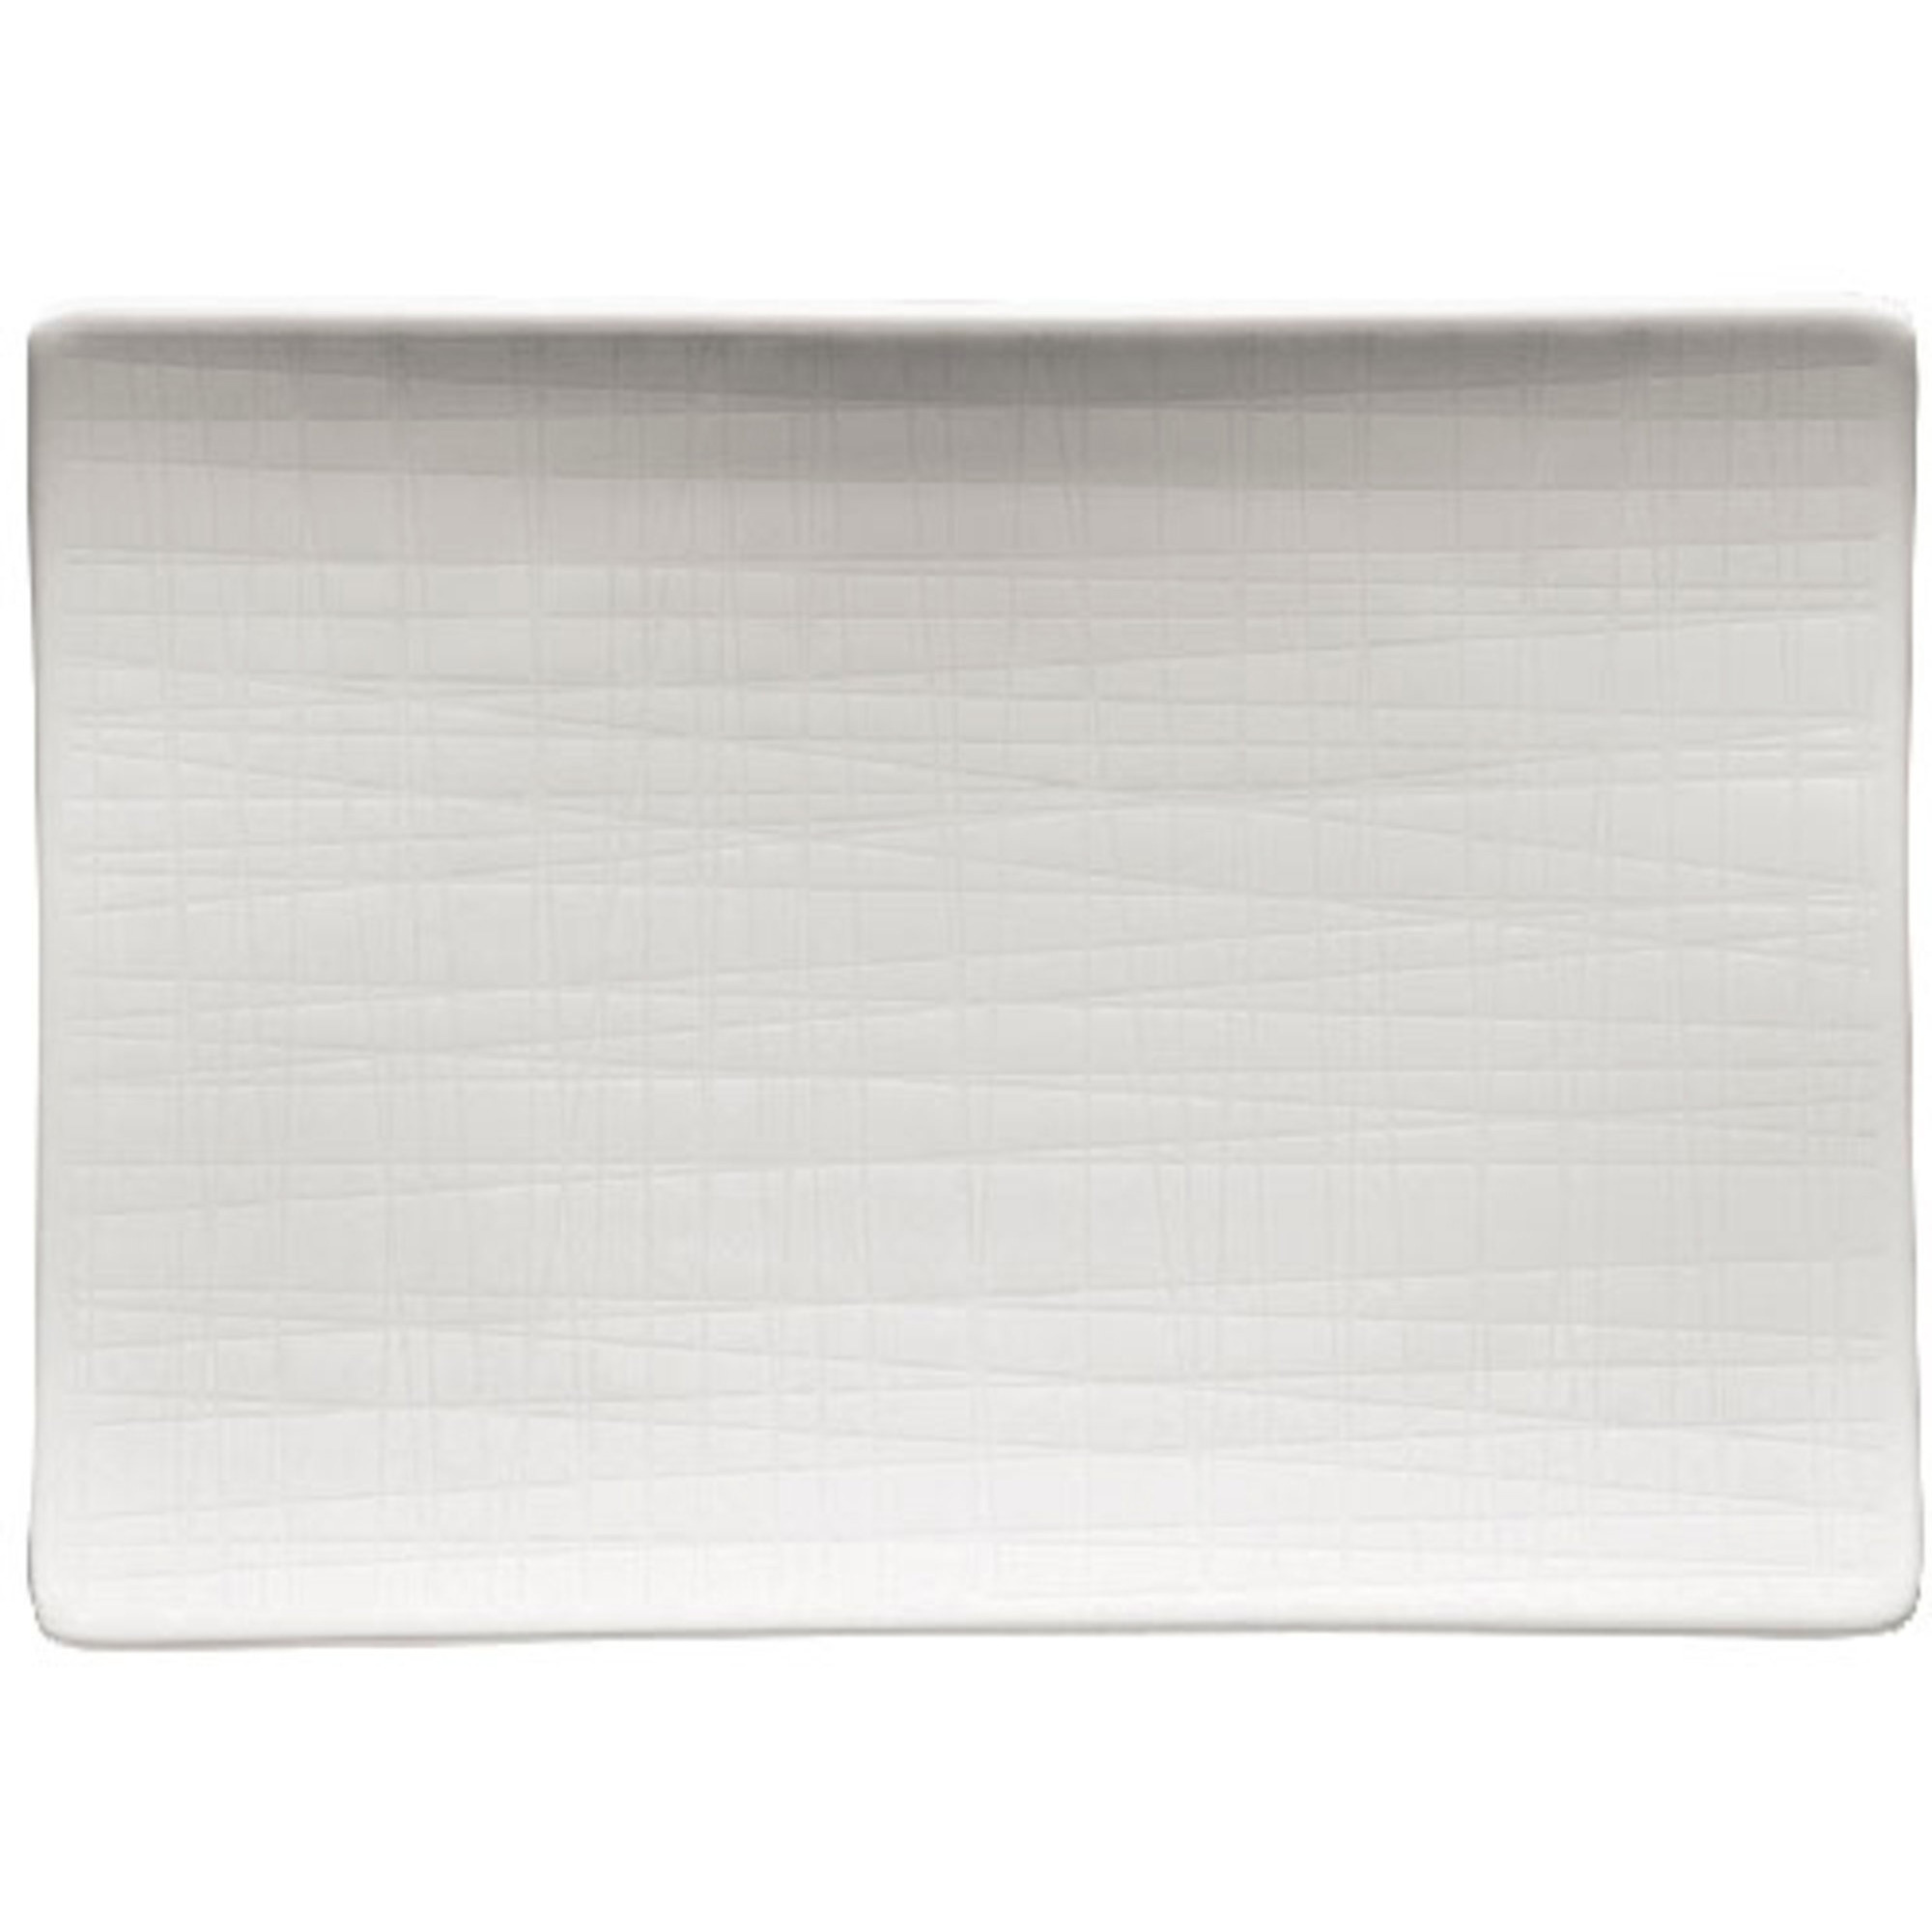 Rosenthal Mesh Relief Fat 18 x 13 cm